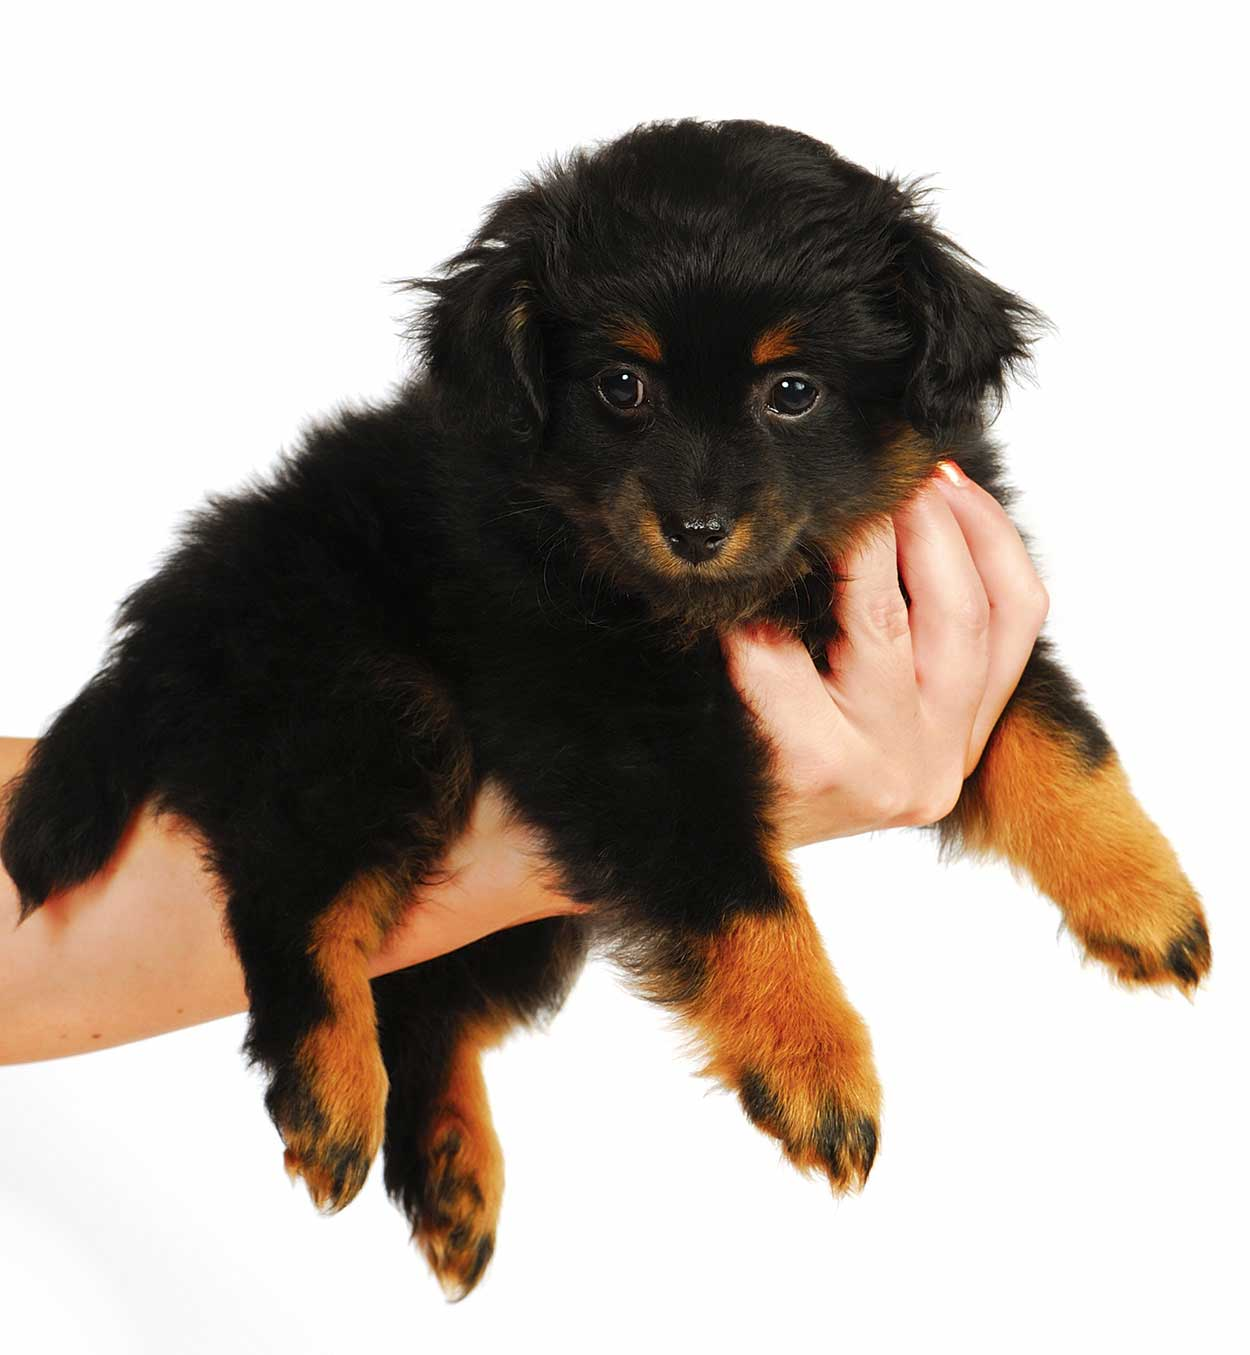 Yorkipoo - The Yorkshire Terrier Poodle mixes